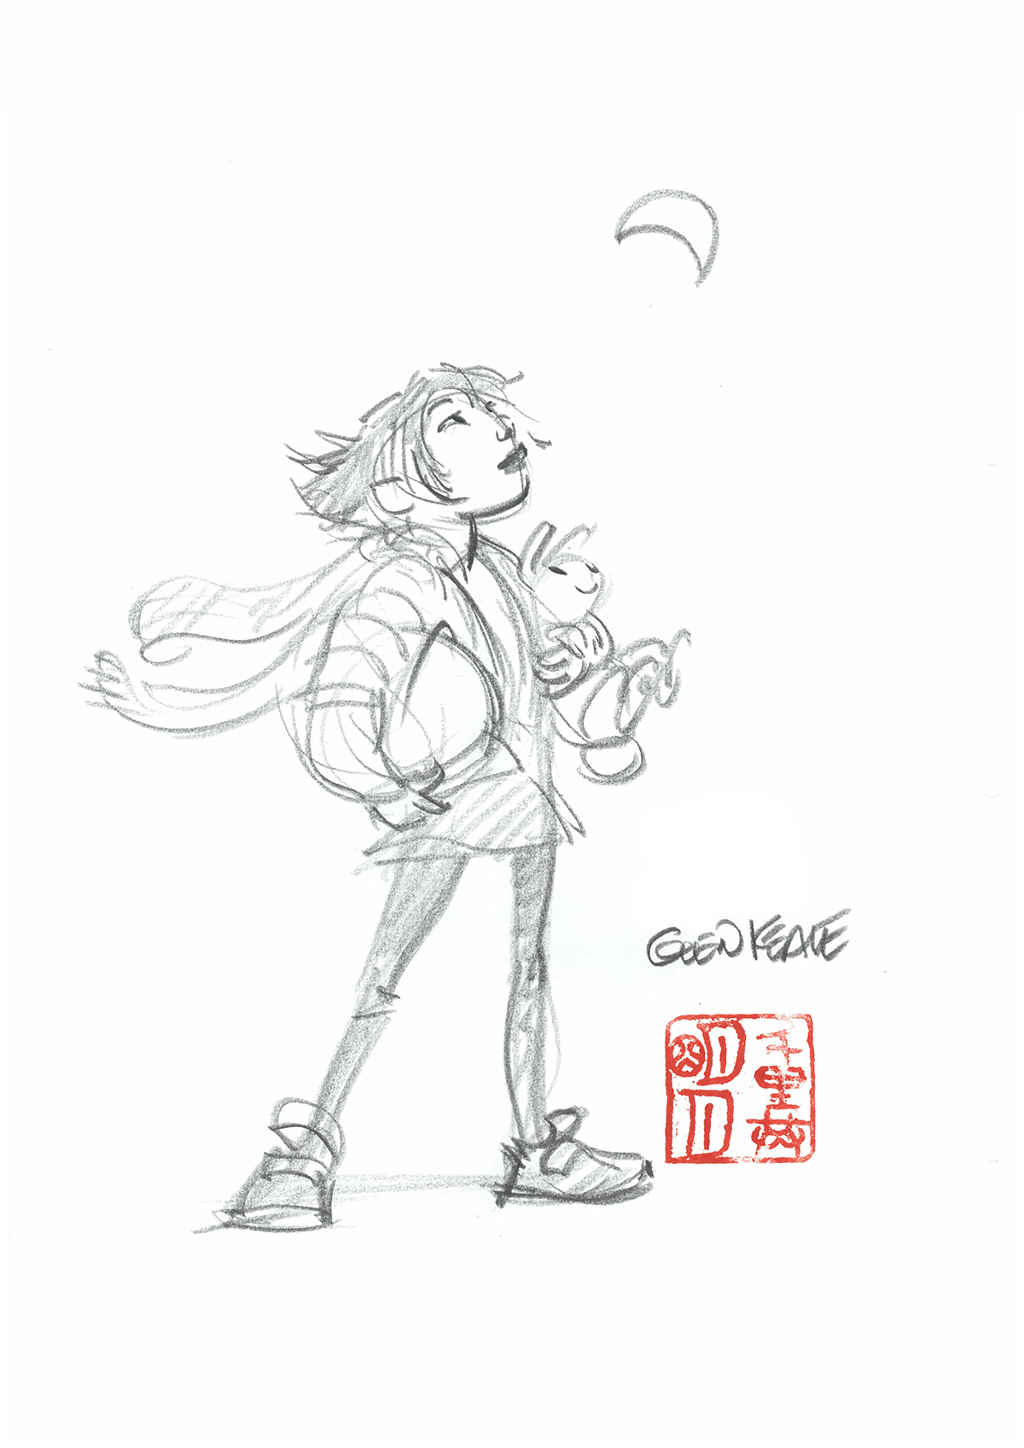 Glen_Keane _Even Though We Are Separated By Thousands of Miles, We Share The Same Moon